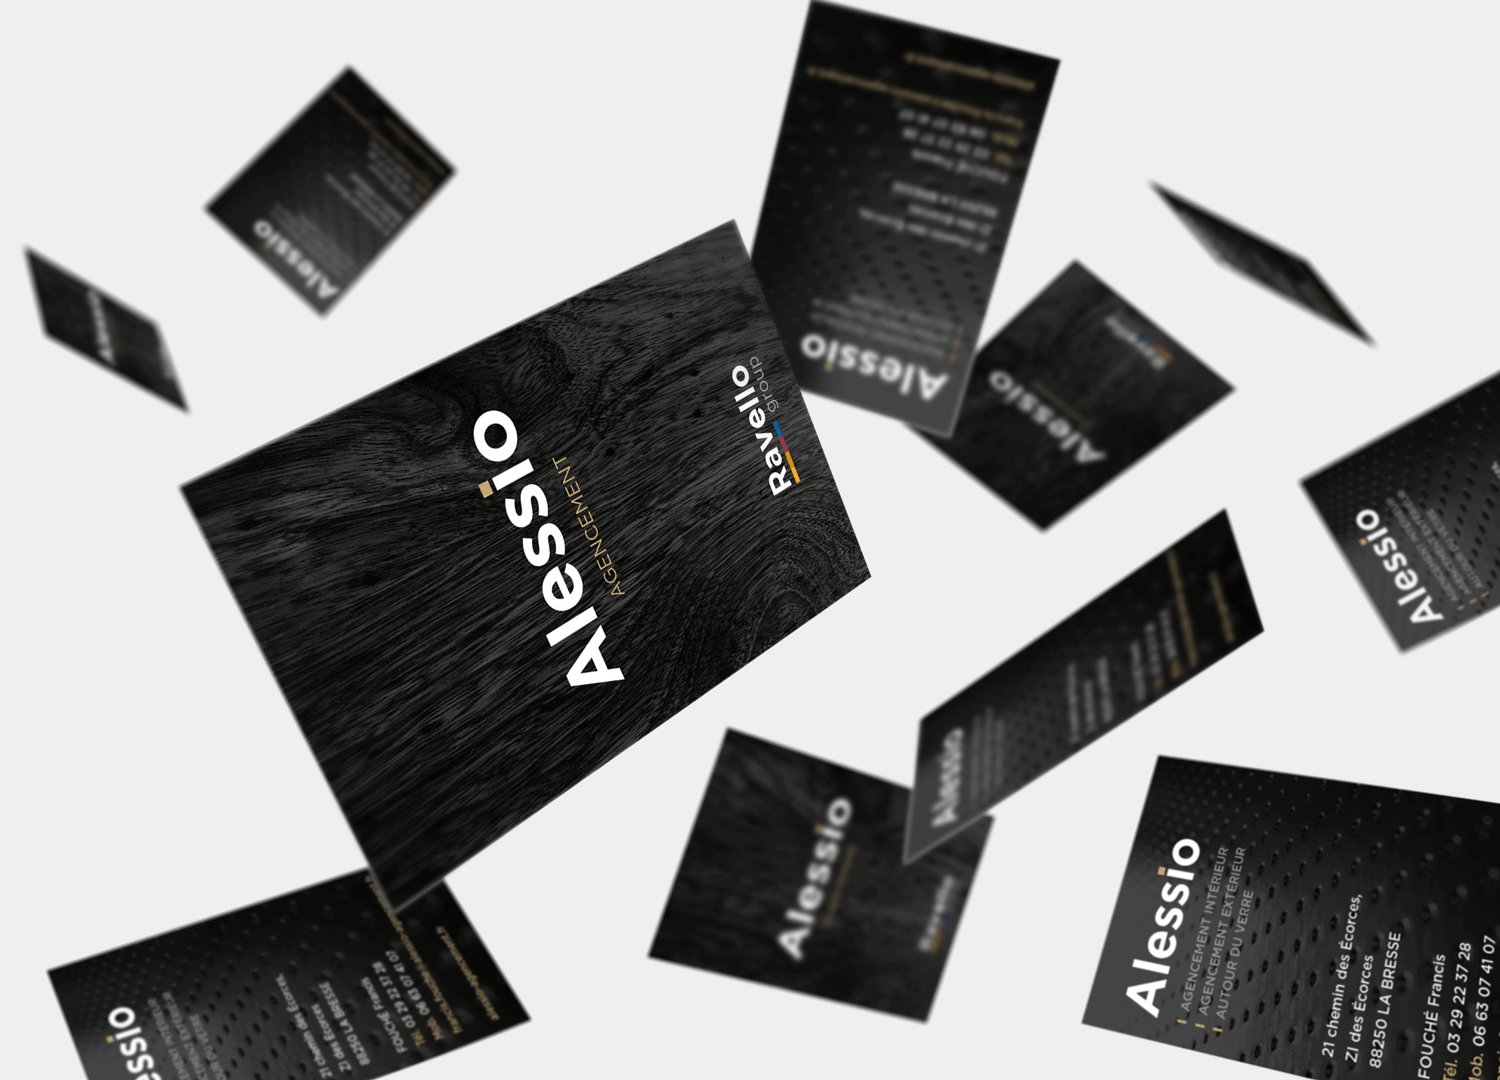 business card mockup copie